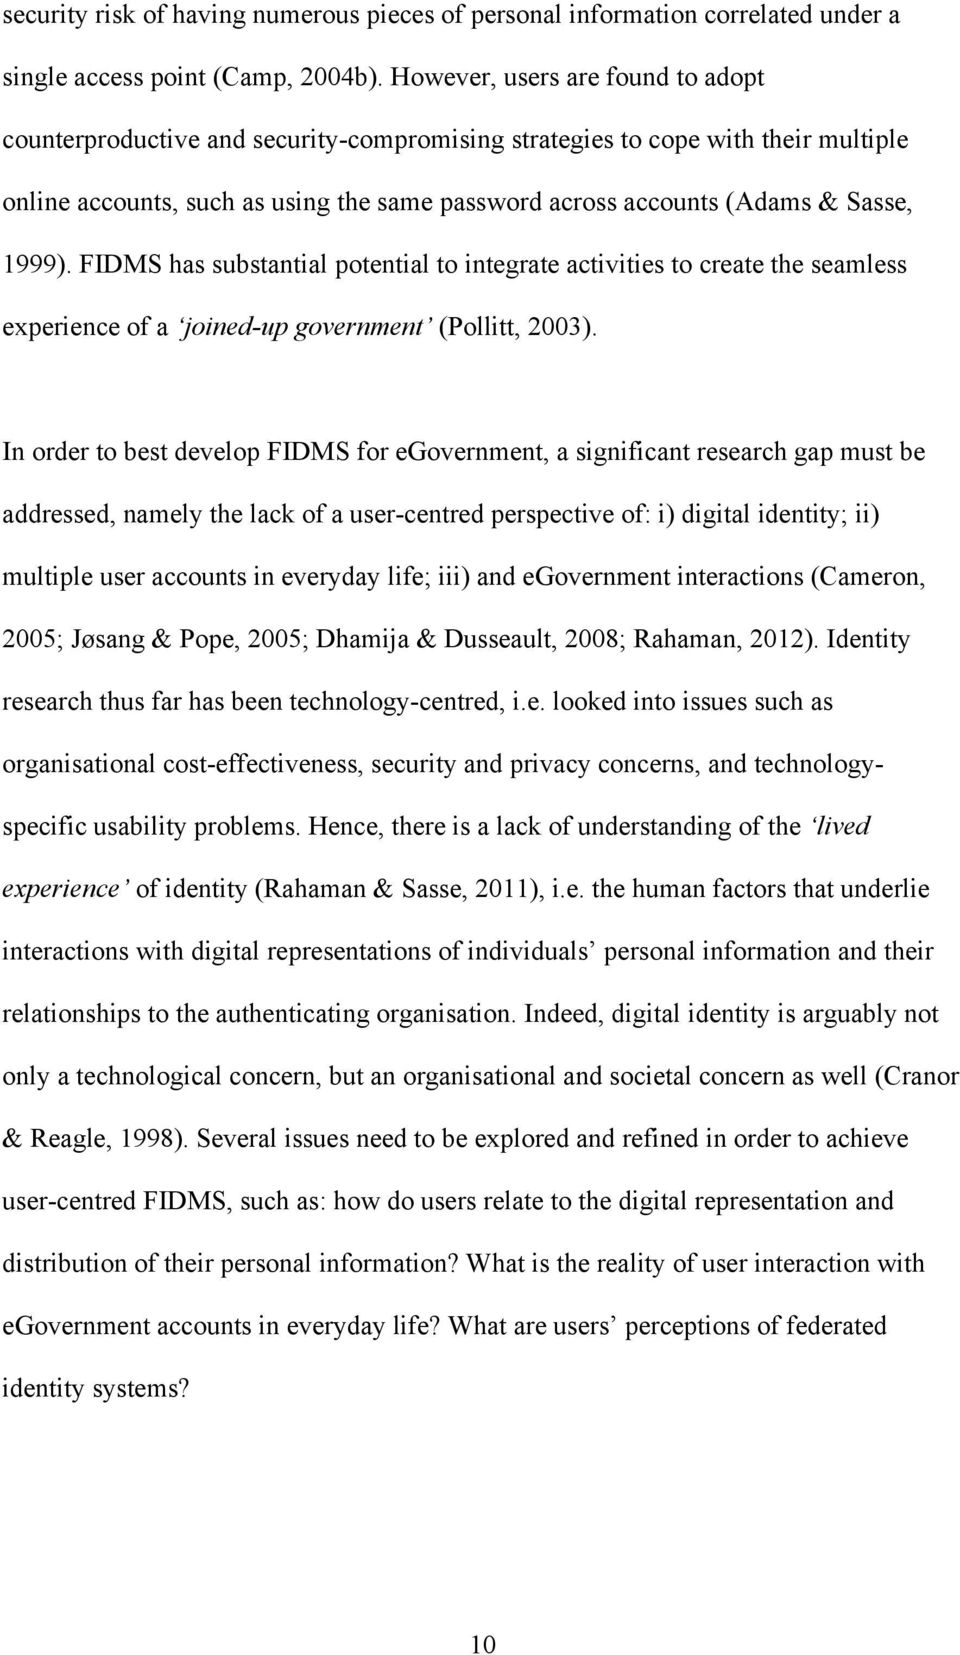 1999). FIDMS has substantial potential to integrate activities to create the seamless experience of a joined-up government (Pollitt, 2003).